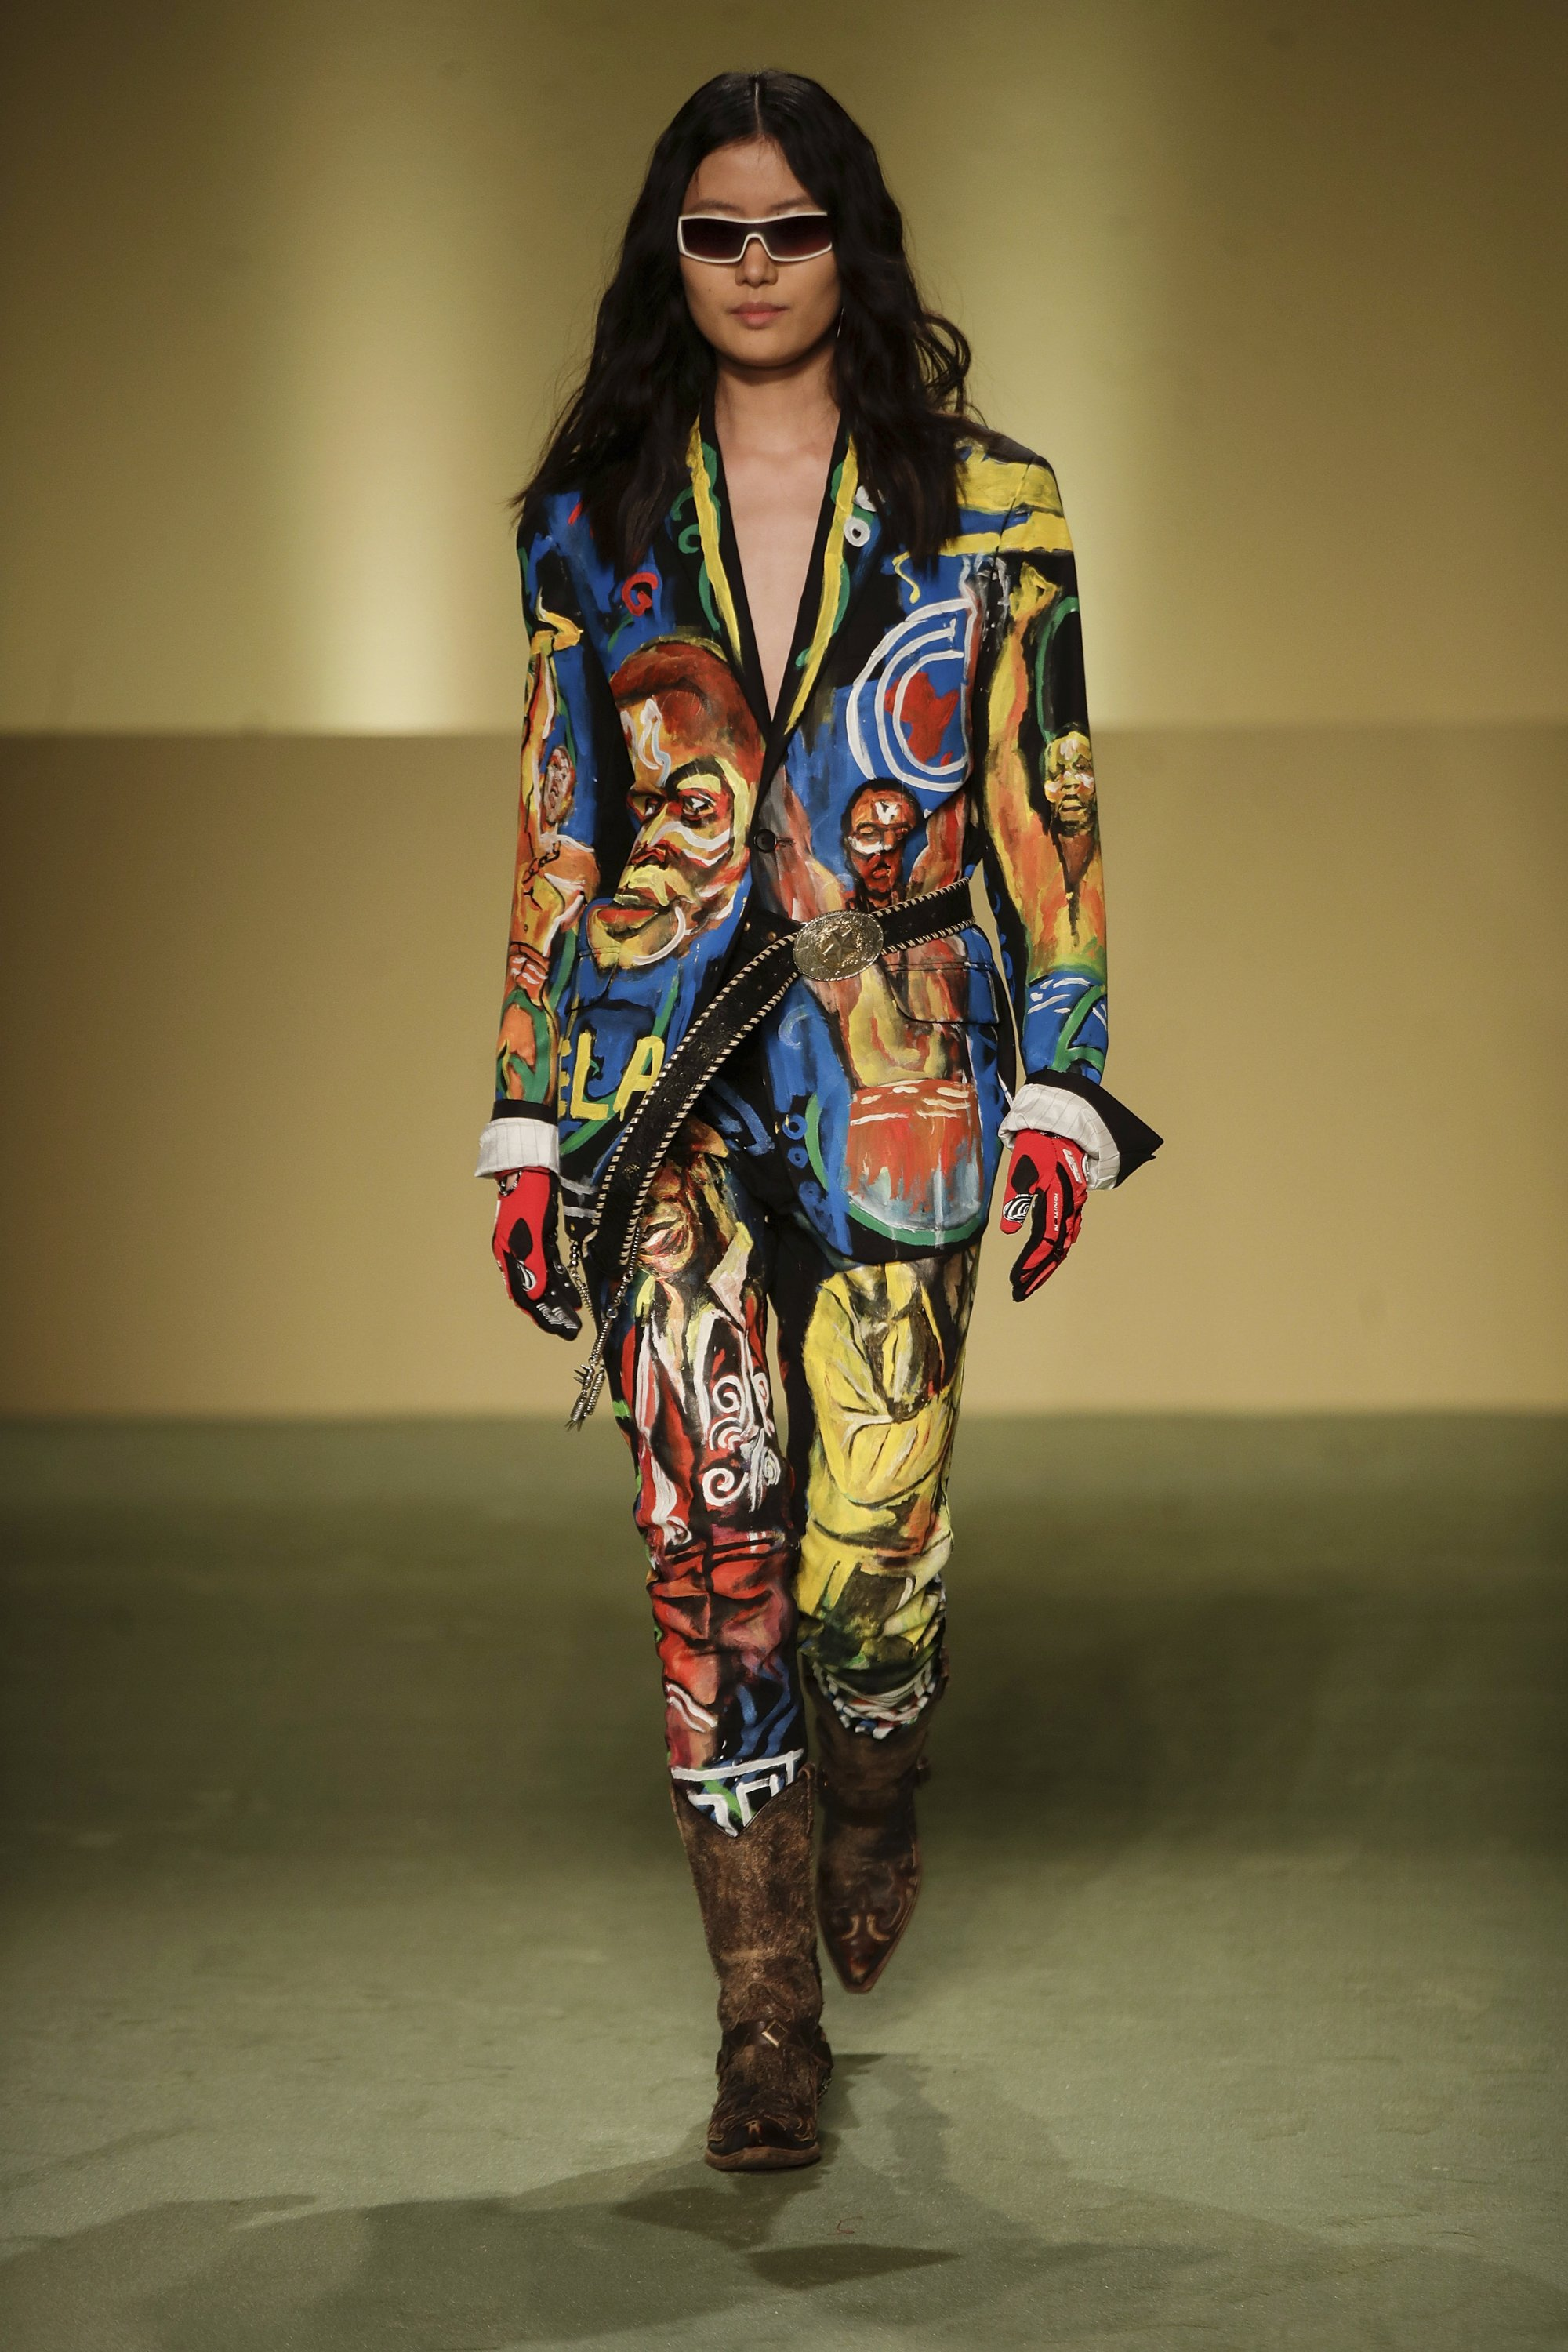 A model wears creations by fashion designer Mokodu Fall as part of the collective Black Lives Matter Fall / Winter 2021/22 fashion show, presented in Milan, Italy, February 17, 2021. (AP Photo)